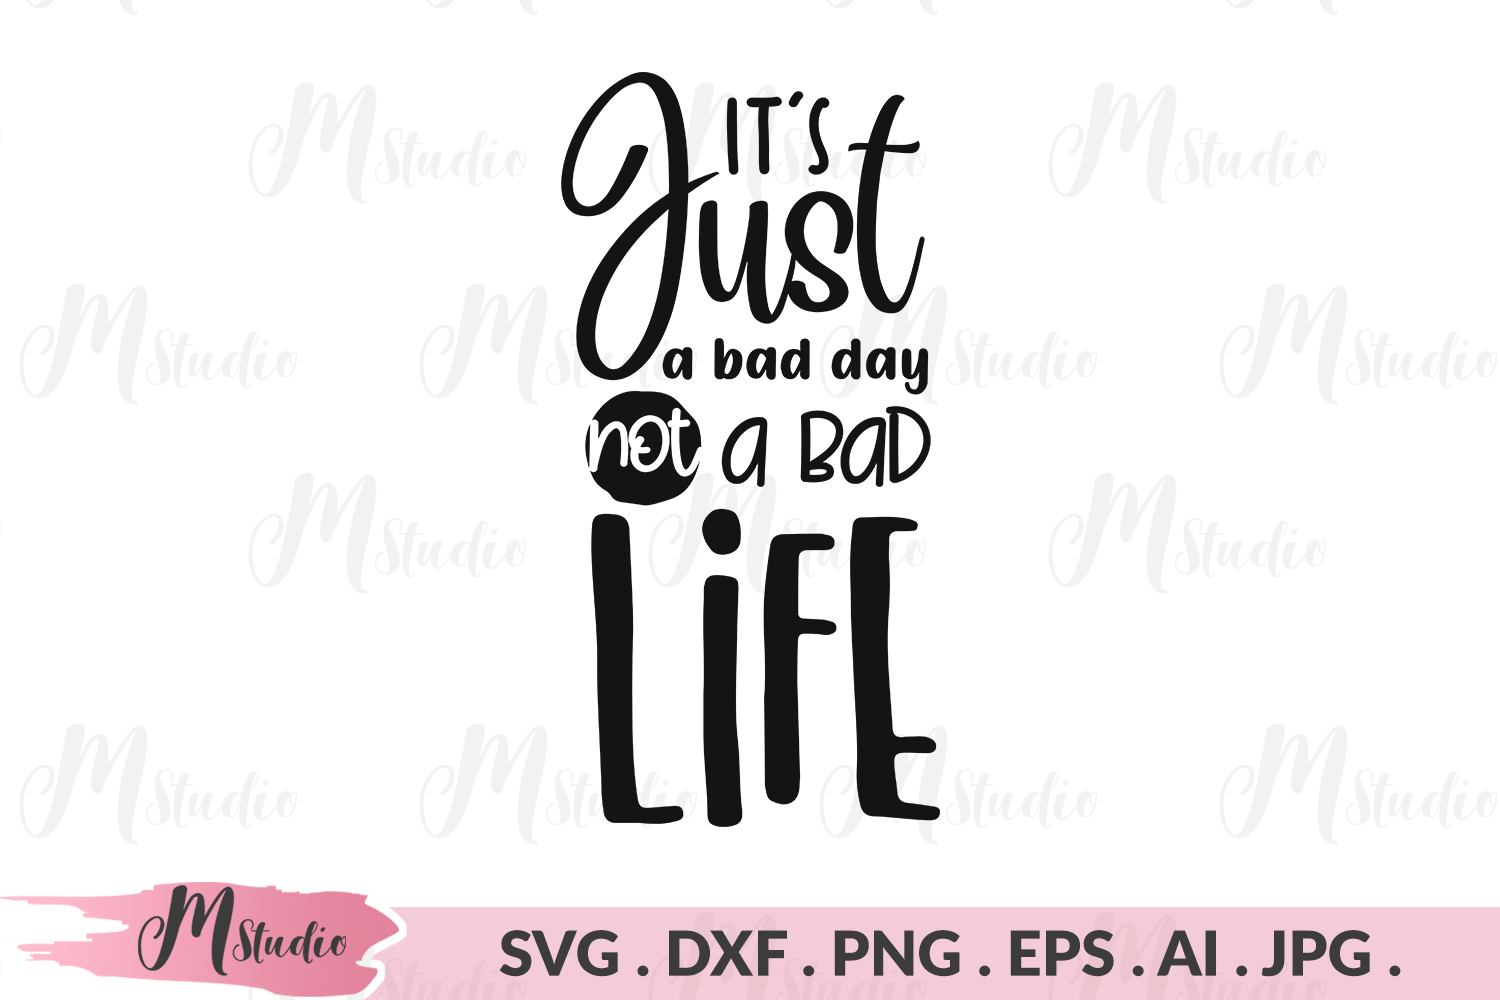 It's just a bad day svg. example image 1